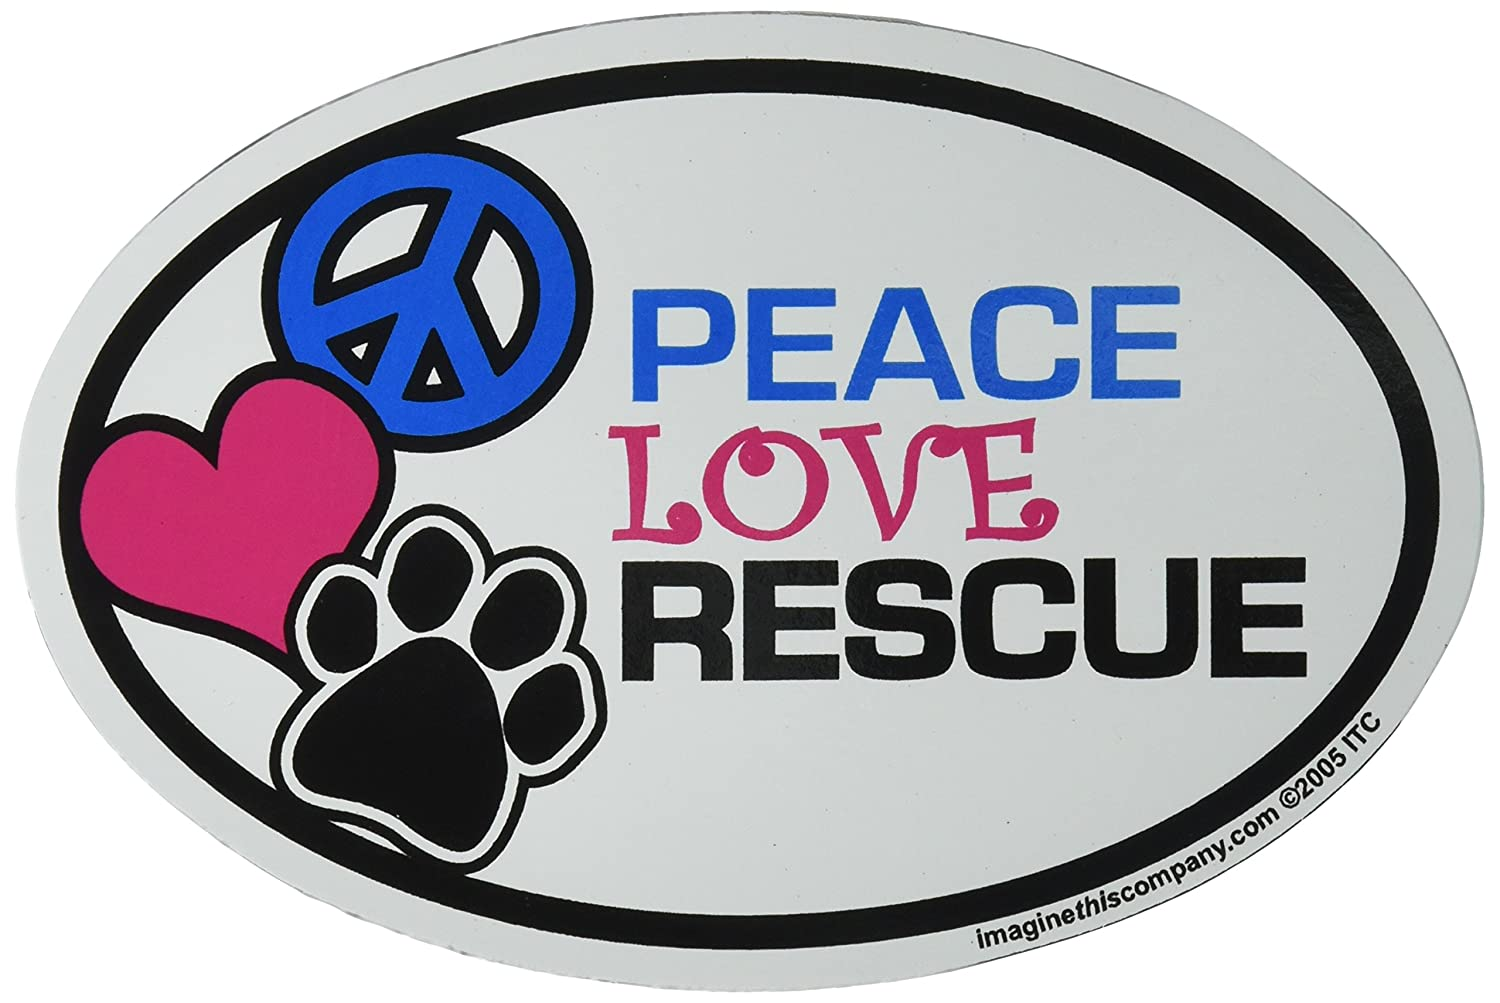 Imagine This Oval Peace Love Rescue Car Magnet, 6-Inch by 4-Inch